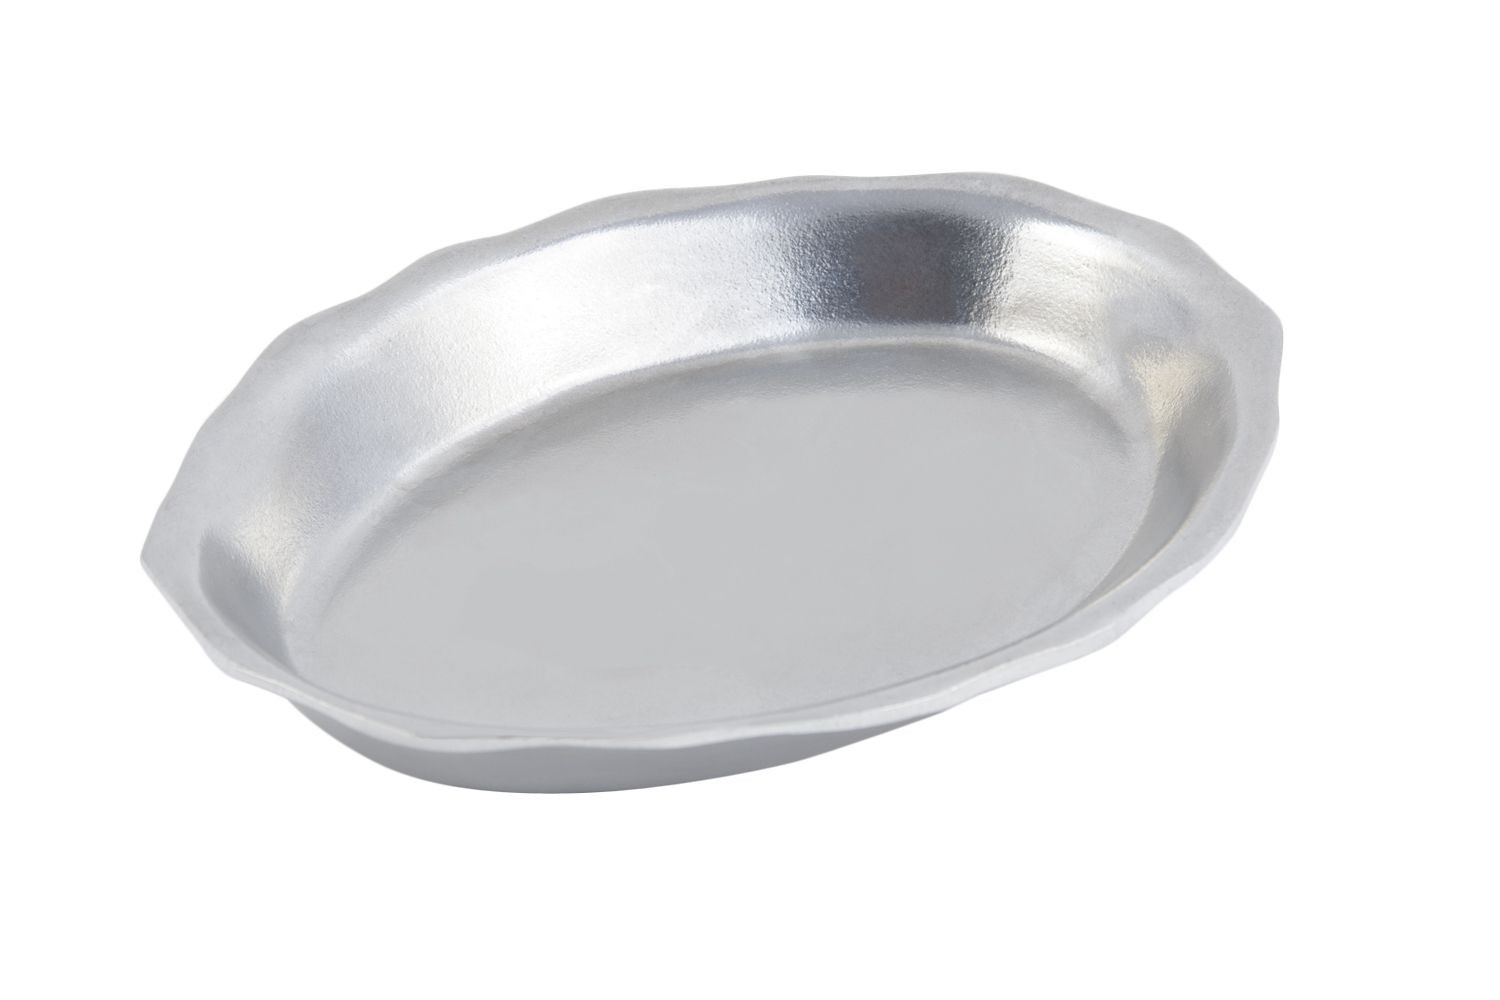 "Bon Chef 2012P Queen Anne Sandwich Platter, Pewter Glo 6 3/4"" x 9"", Set of 3"